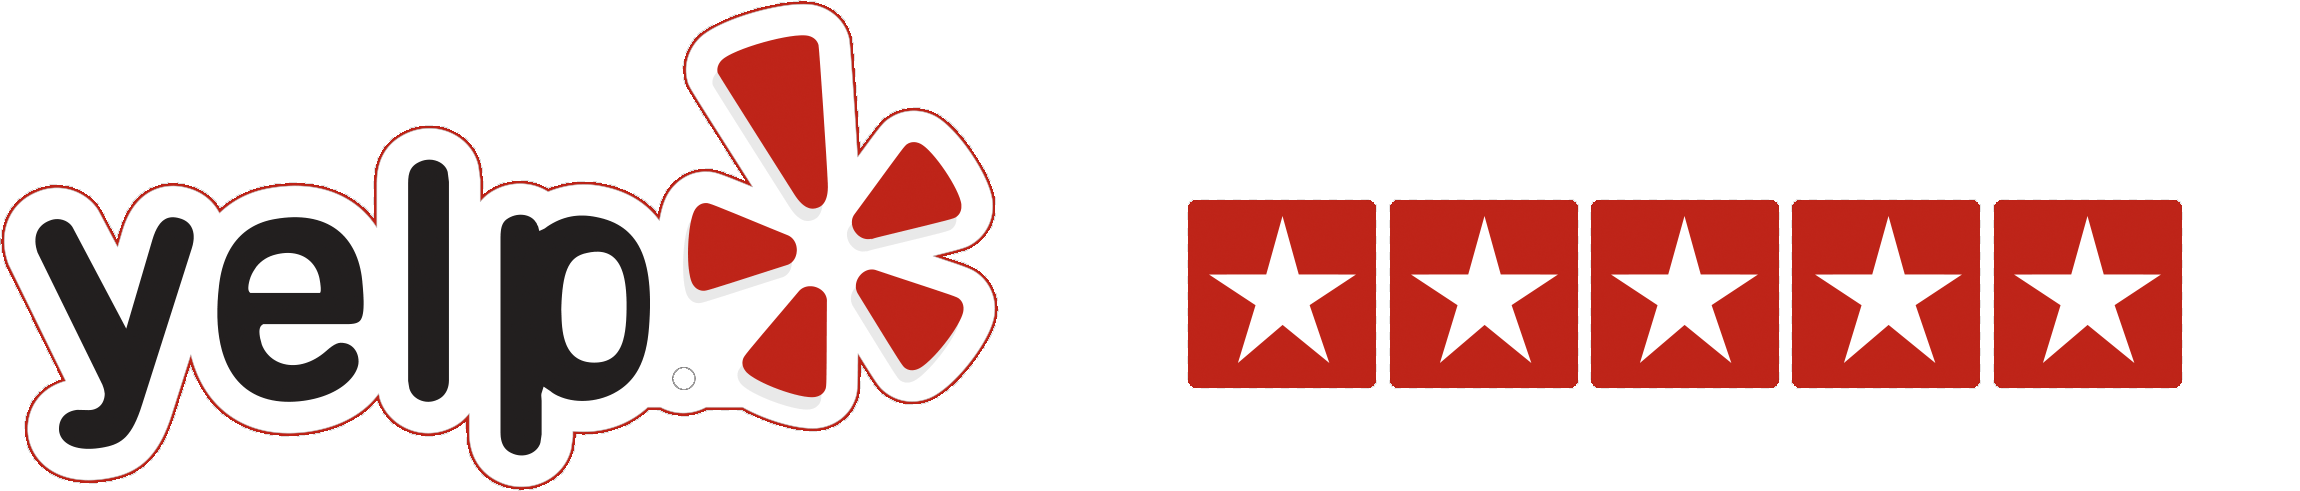 Yelp Logo Transparent.png